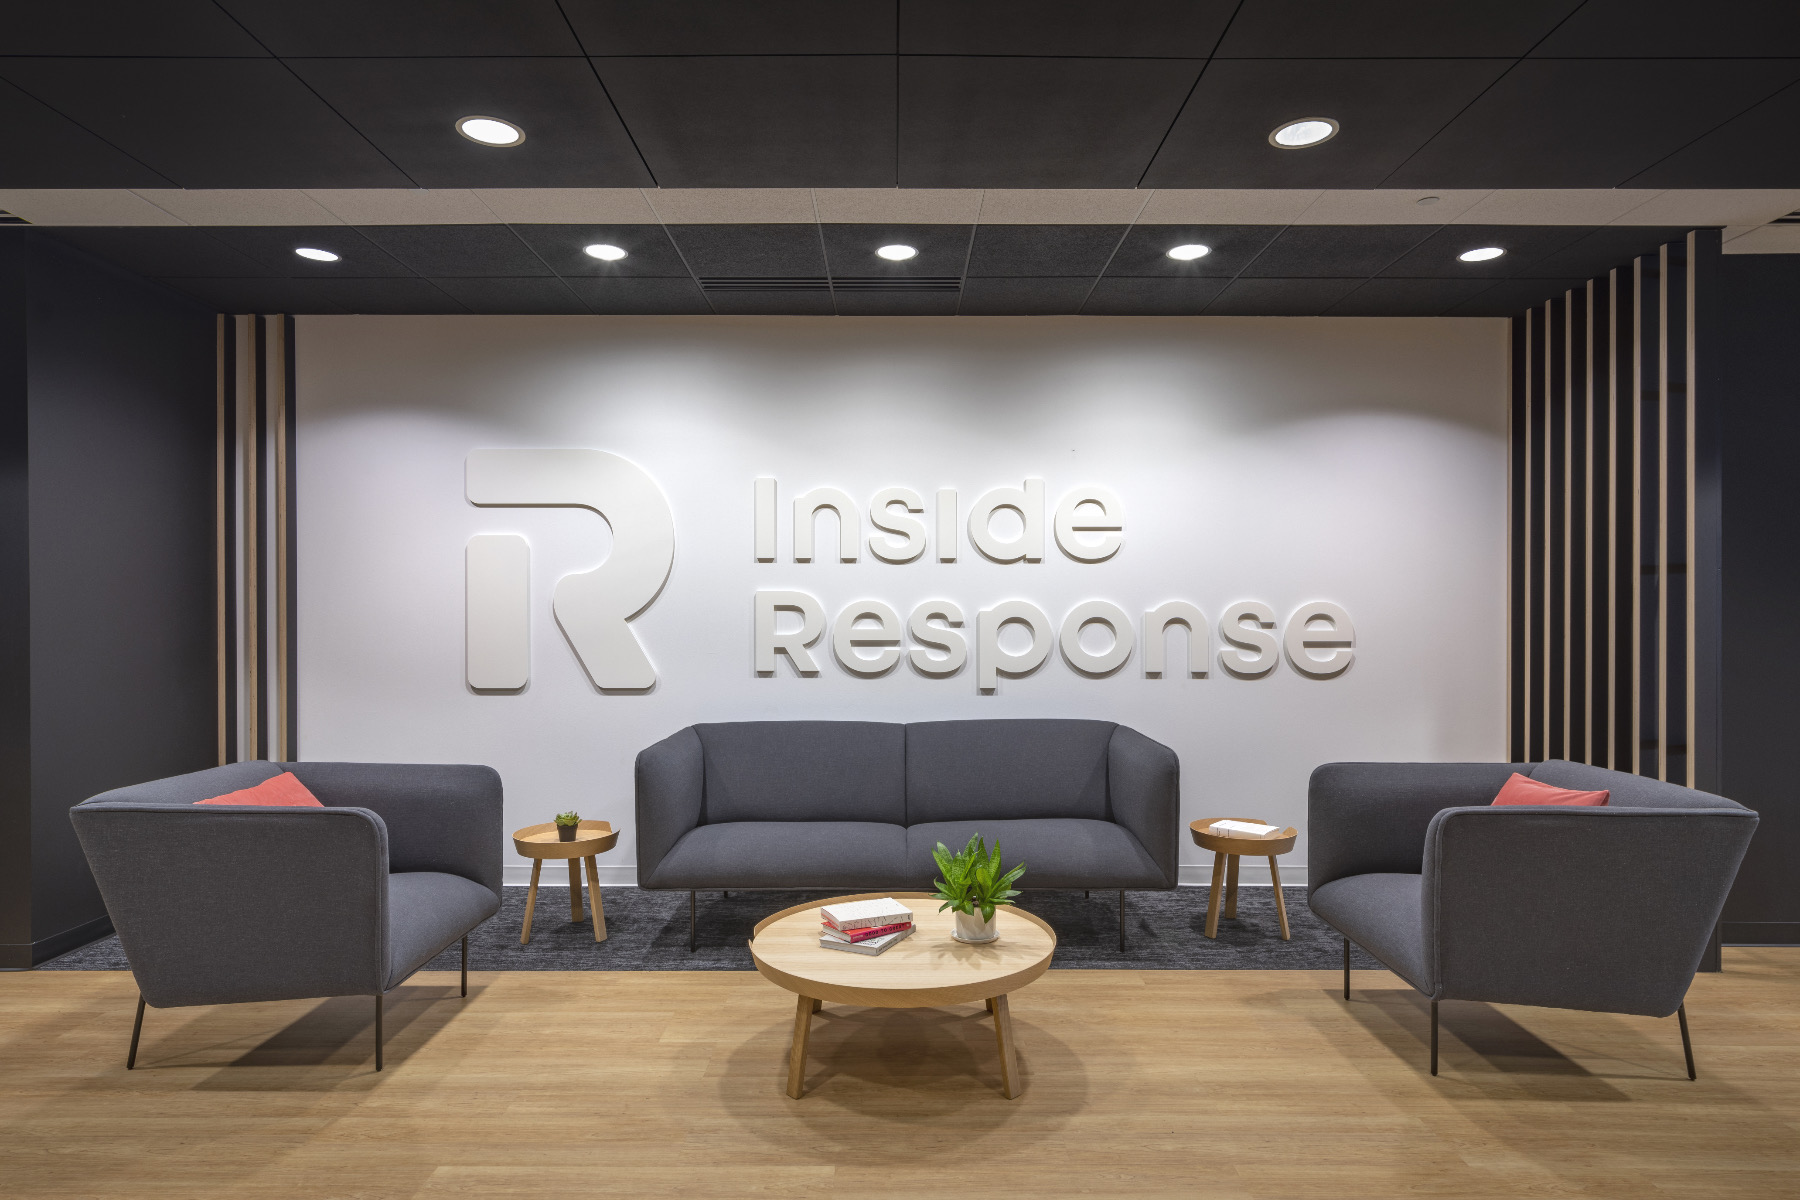 A Tour of Inside Response's Overland Park Office